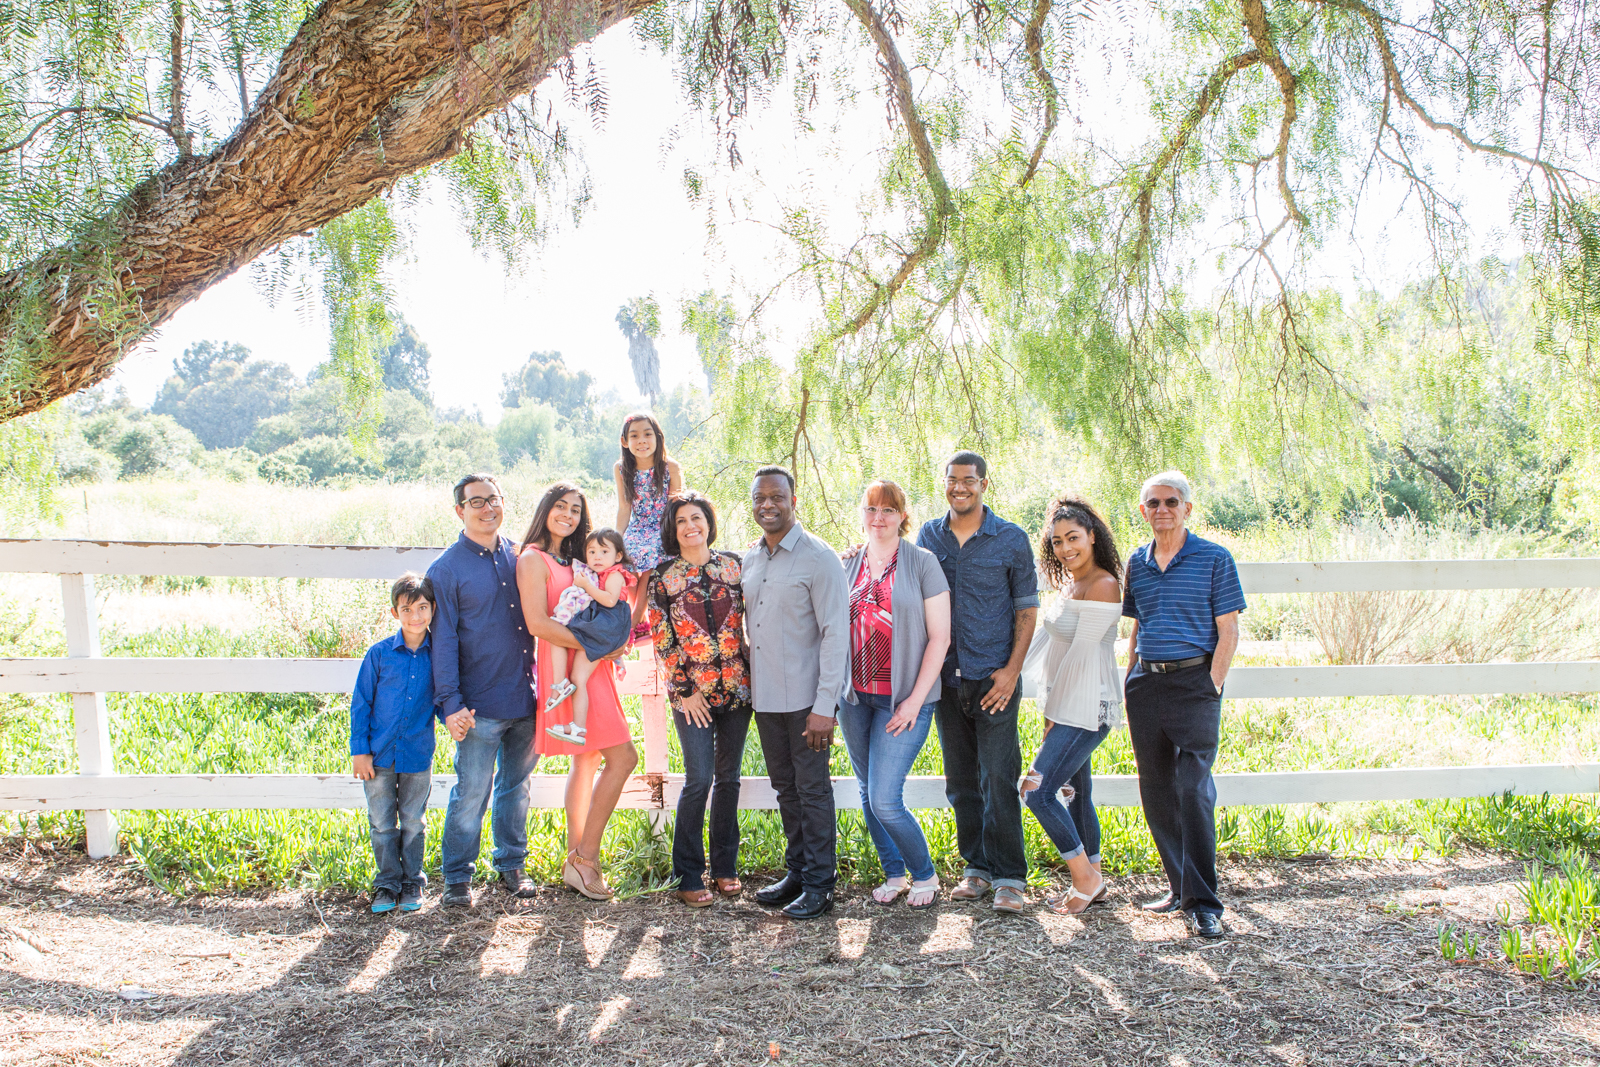 family photos taken at Jacks Pond San Marcos by a professional photographer in San Diego and Oceanside.